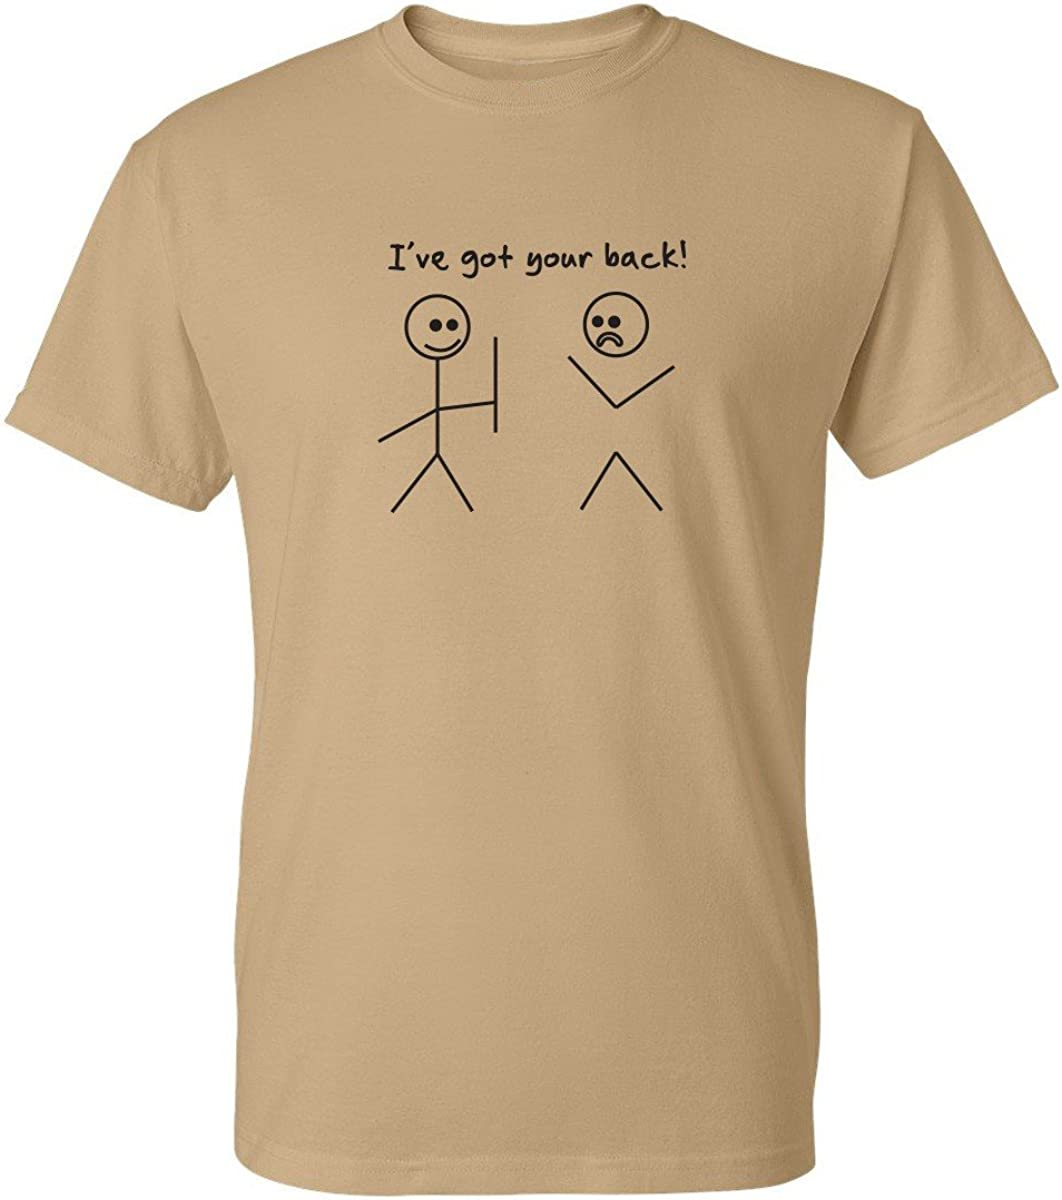 Ive Got Your Back Stick Figure Graphic Friends Funny T Shirt Funny T Shirts